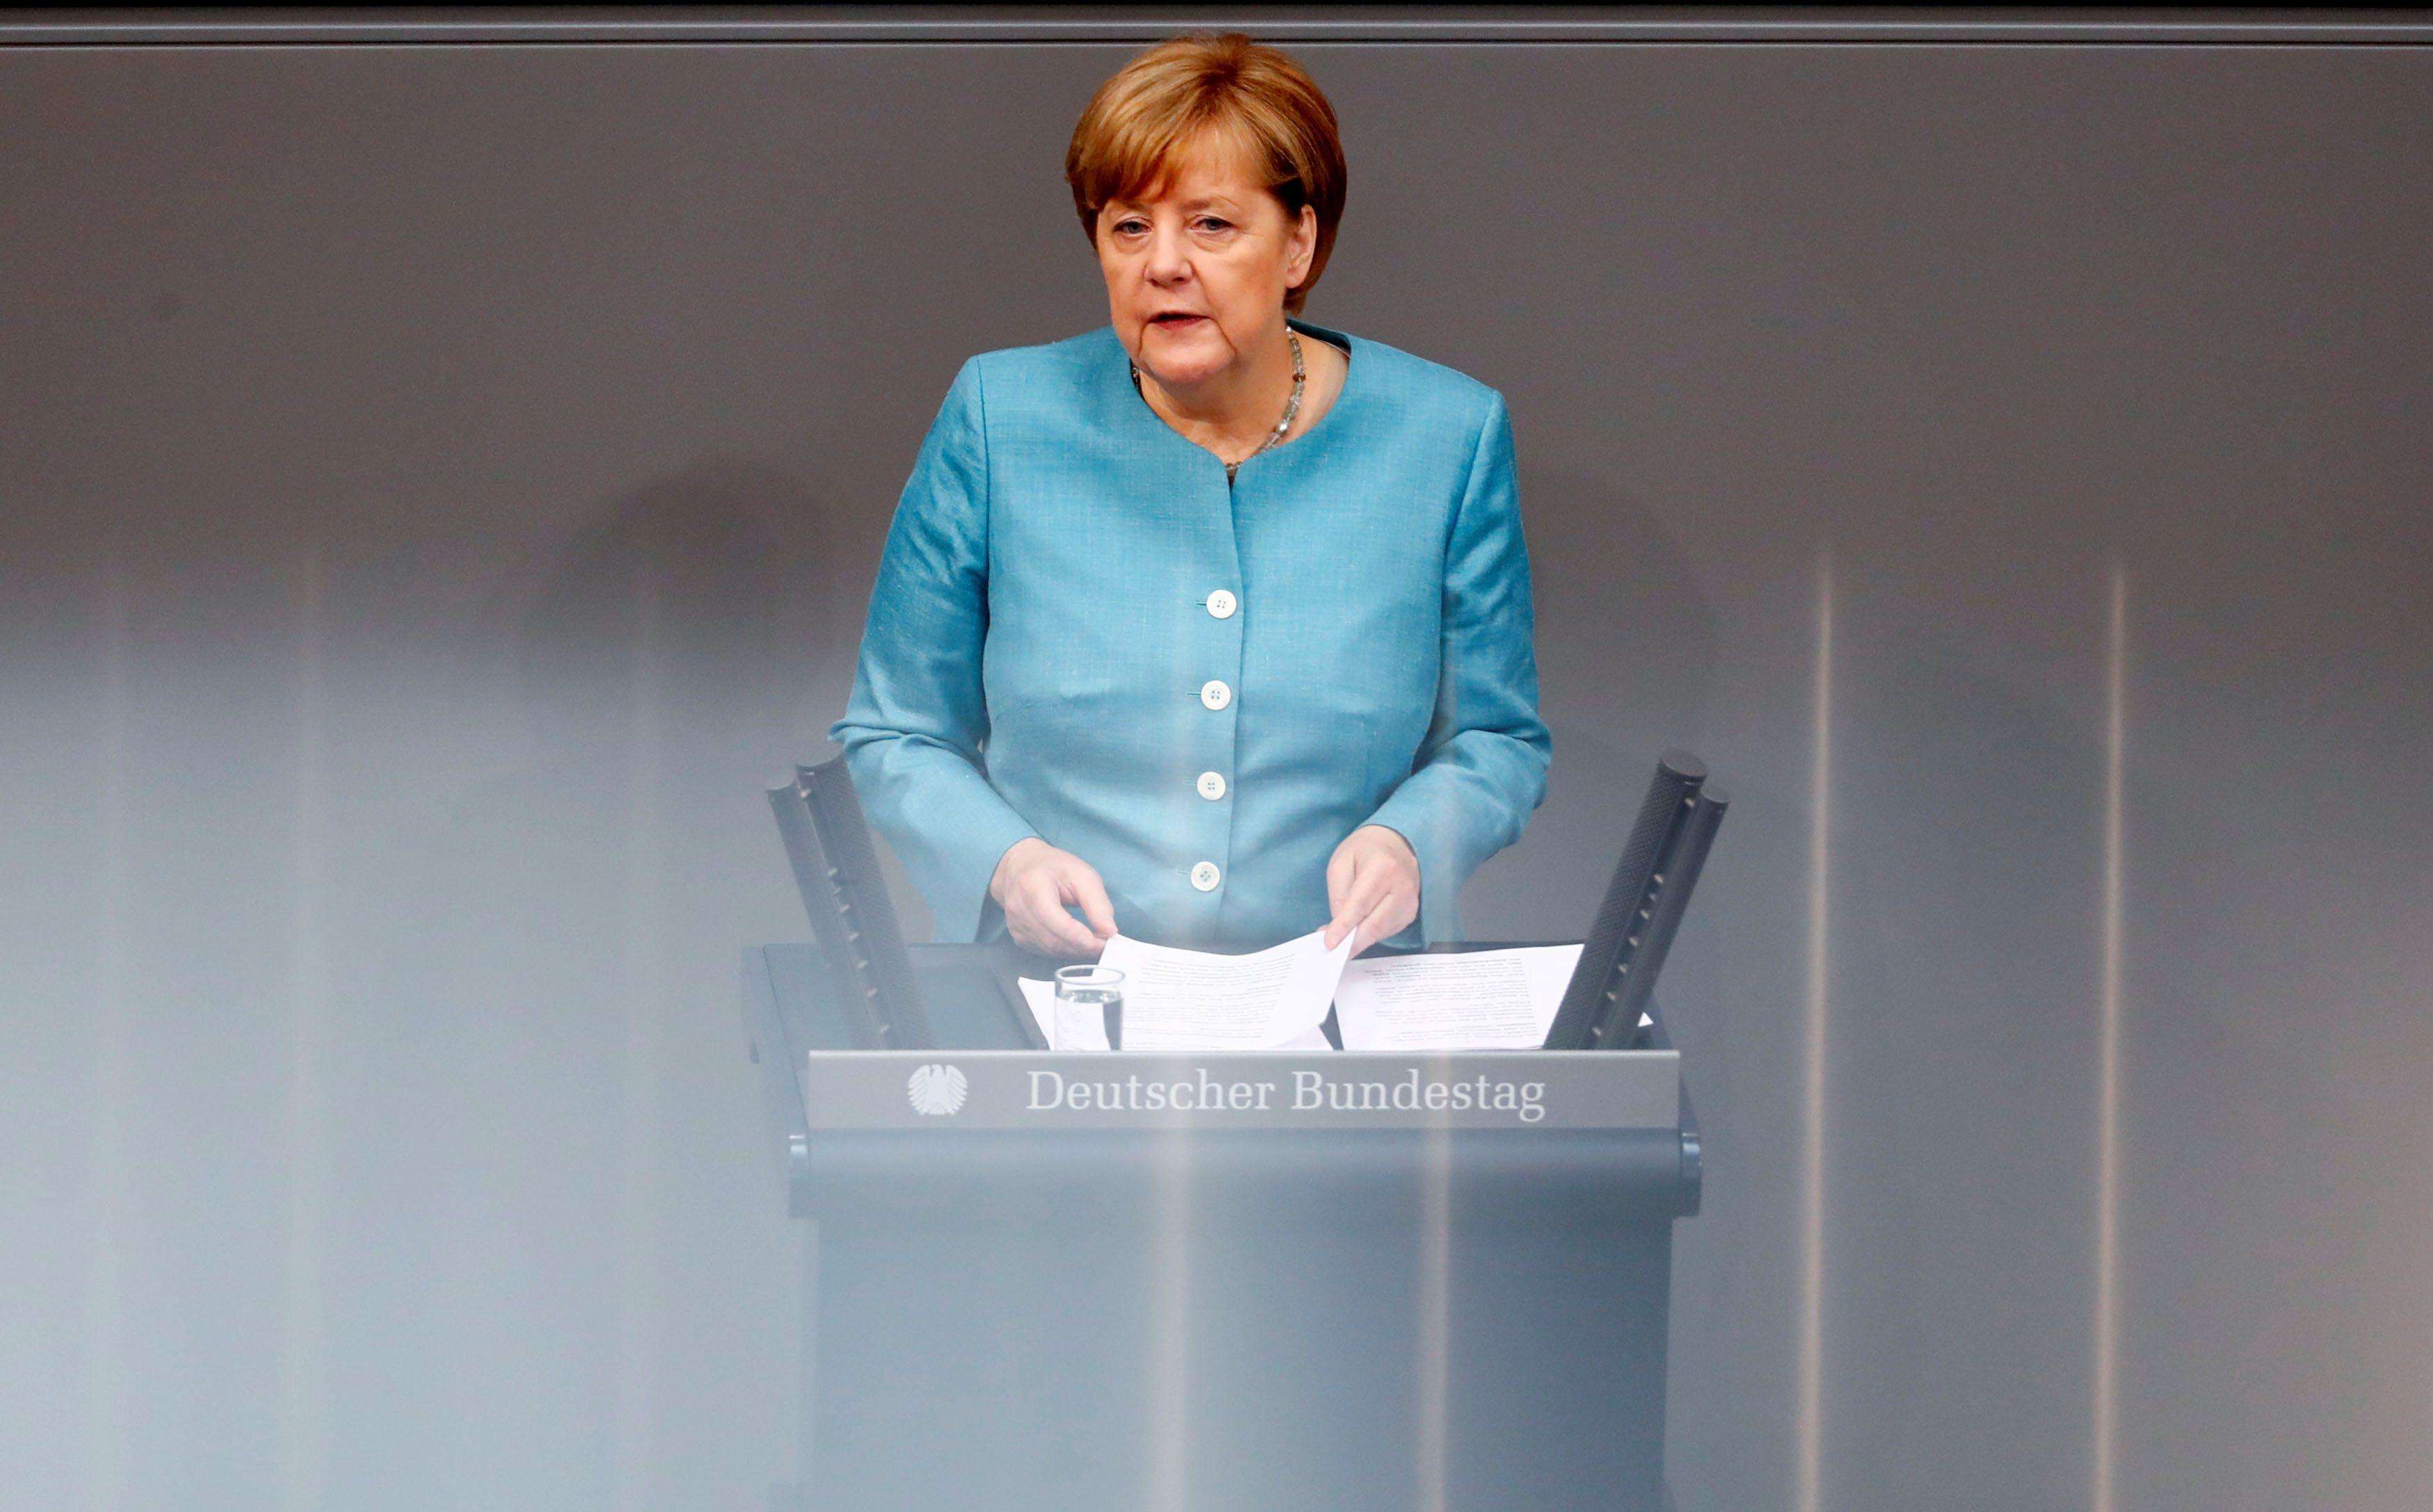 German Chancellor Angela Merkel addresses the lower house of parliament Bundestag to deliver State of the Nation Address ahead of EU summit and G20 in Berlin, Germany June 29, 2017. REUTERS/Fabrizio Bensch